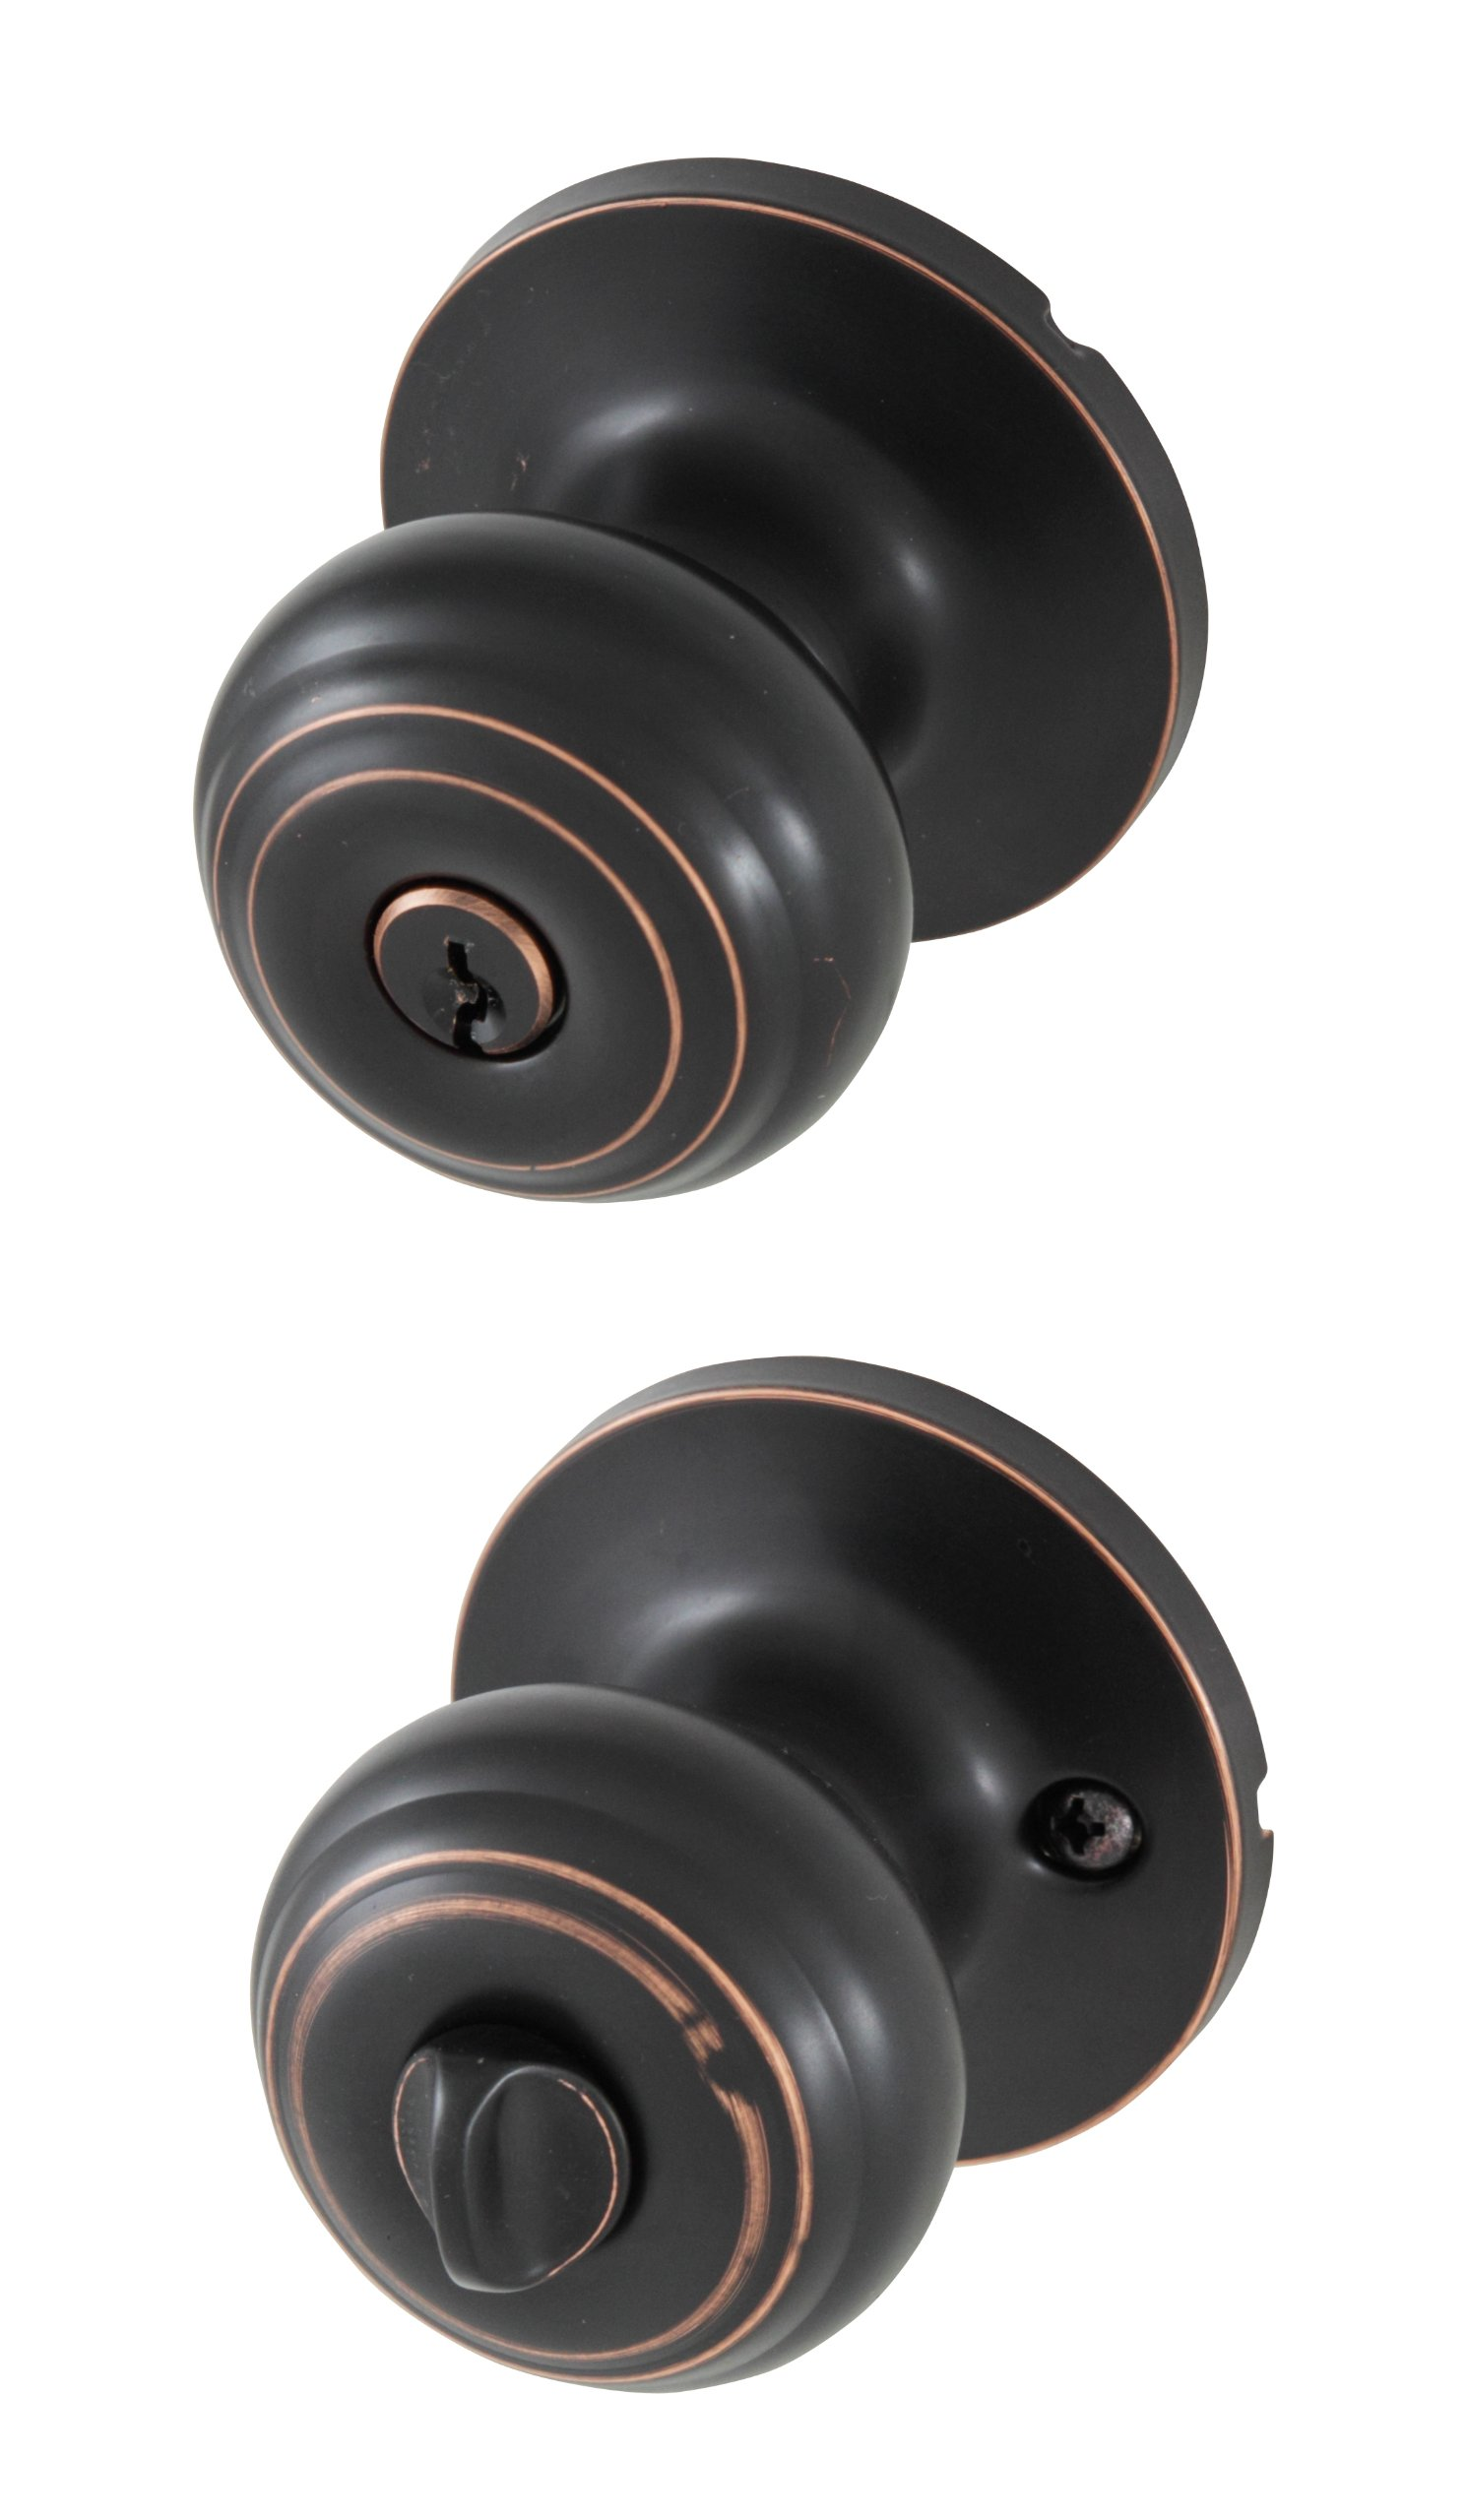 Honeywell 8101401 Classic Entry Door Knob, Oil Rubbed Bronze